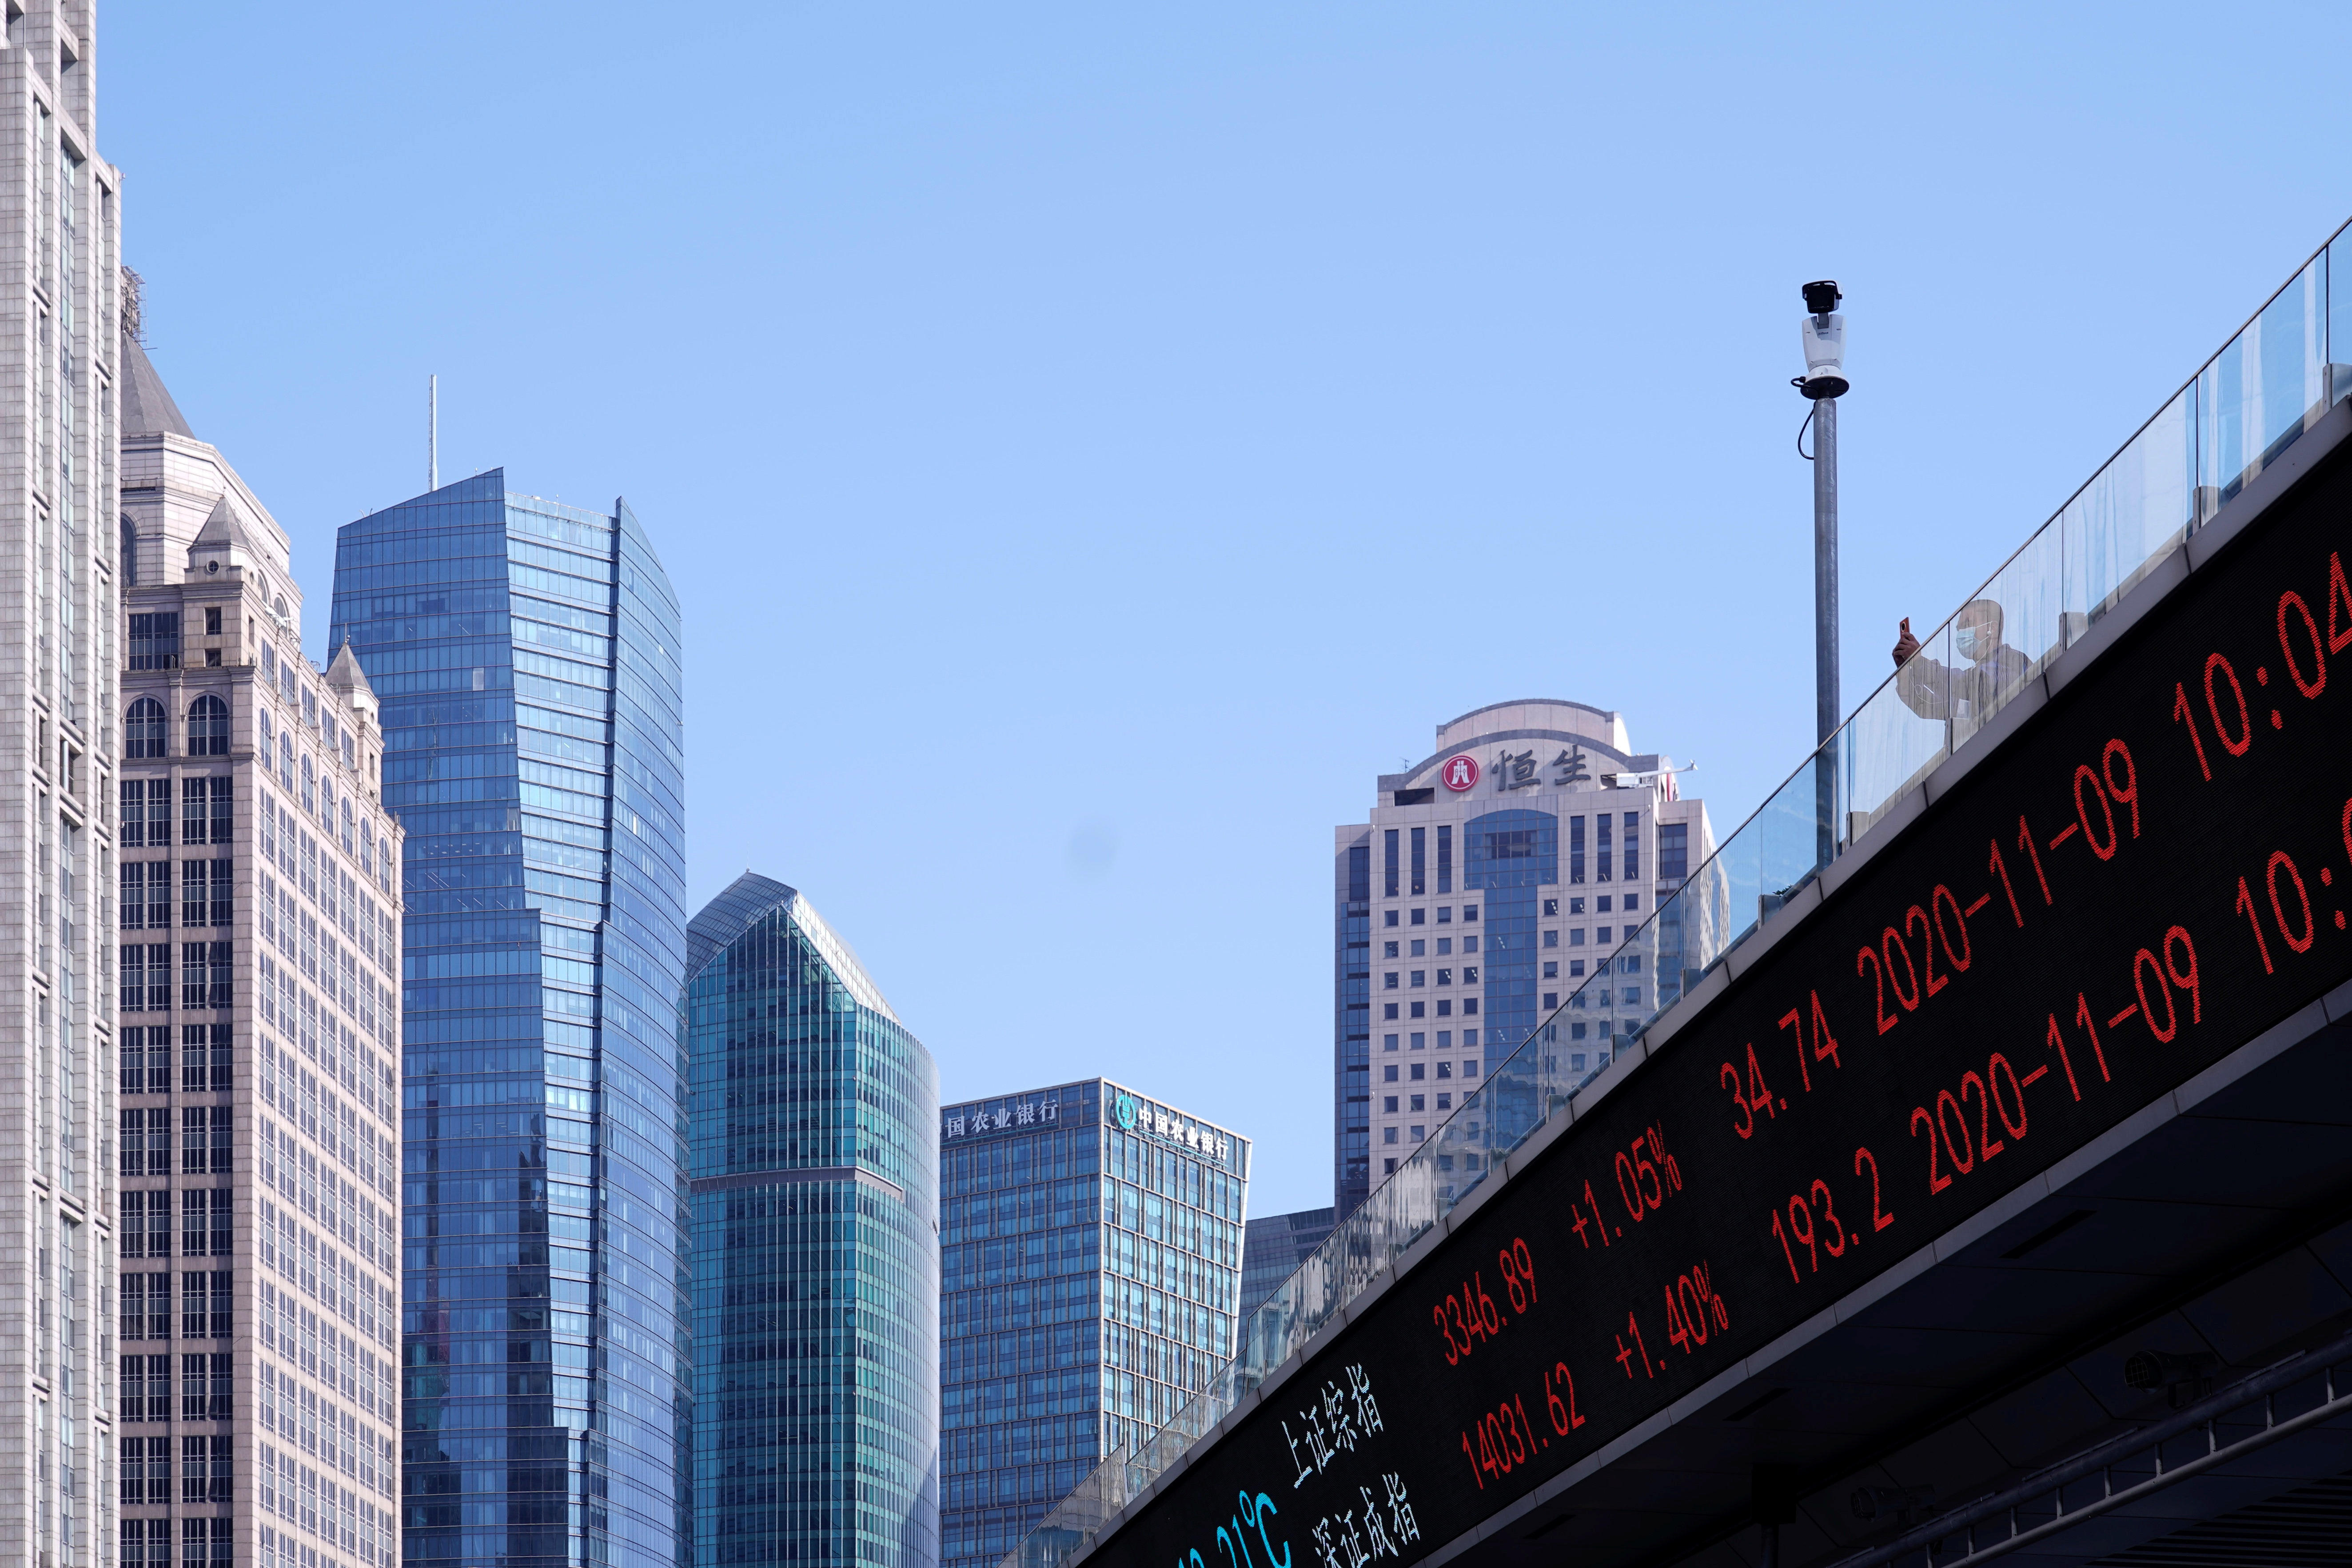 An electronic board showing Shanghai and Shenzhen stock indexes is seen on an overpass at the Lujiazui financial district in Shanghai, China November 9, 2020. REUTERS/Aly Song/File photo